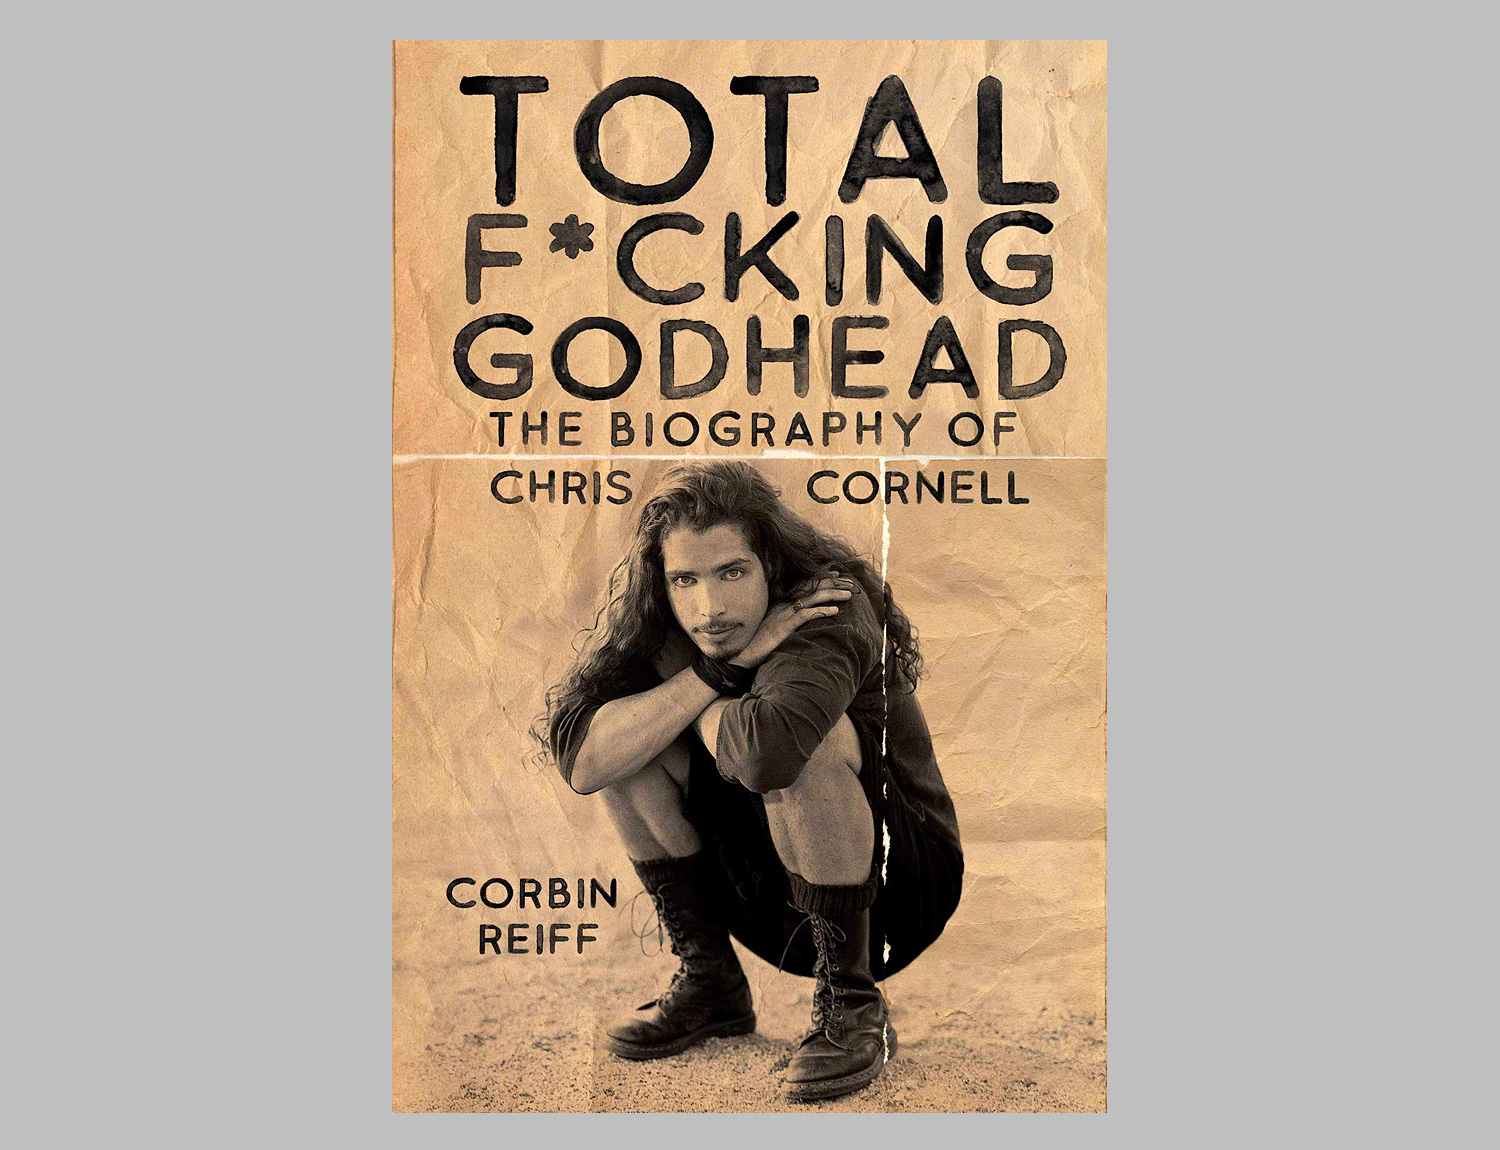 Total F*cking Godhead: The Biography of Chris Cornell at werd.com